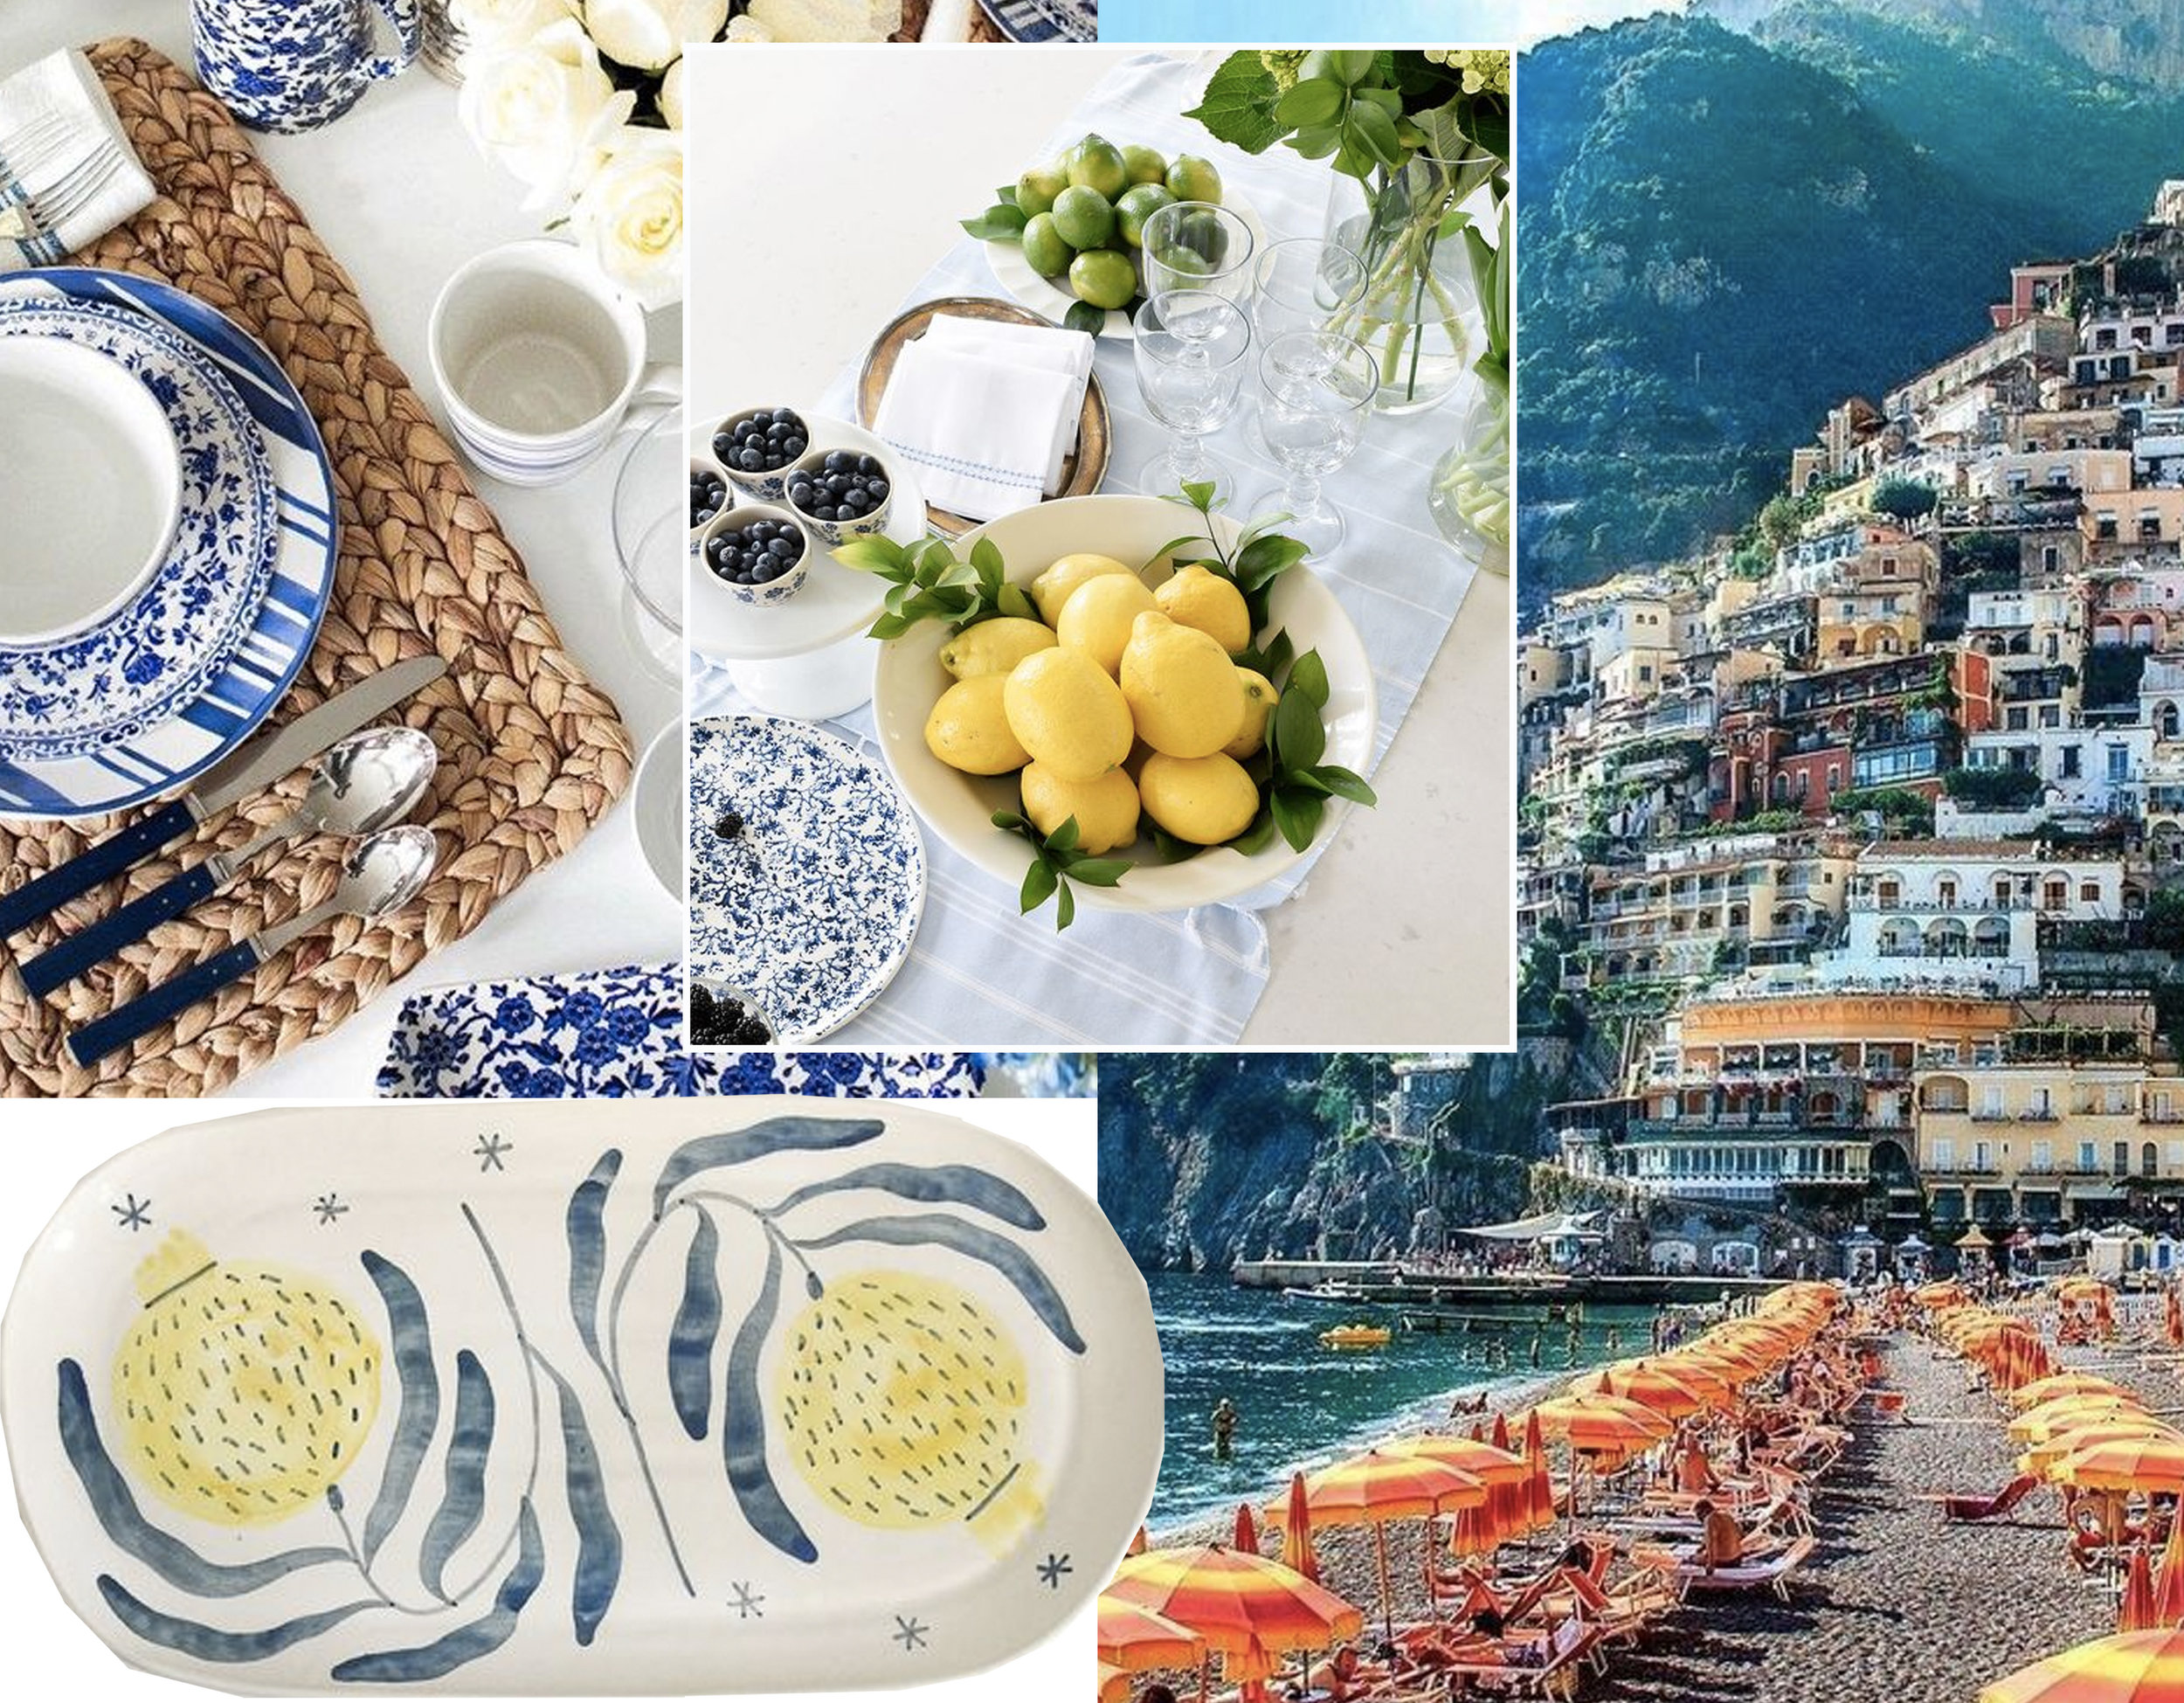 table setting via  Pinterest  - oval platter  Madalina Andronic  - lemons as table decoration via  Citrineliving  - Positano via  Buzzfeed